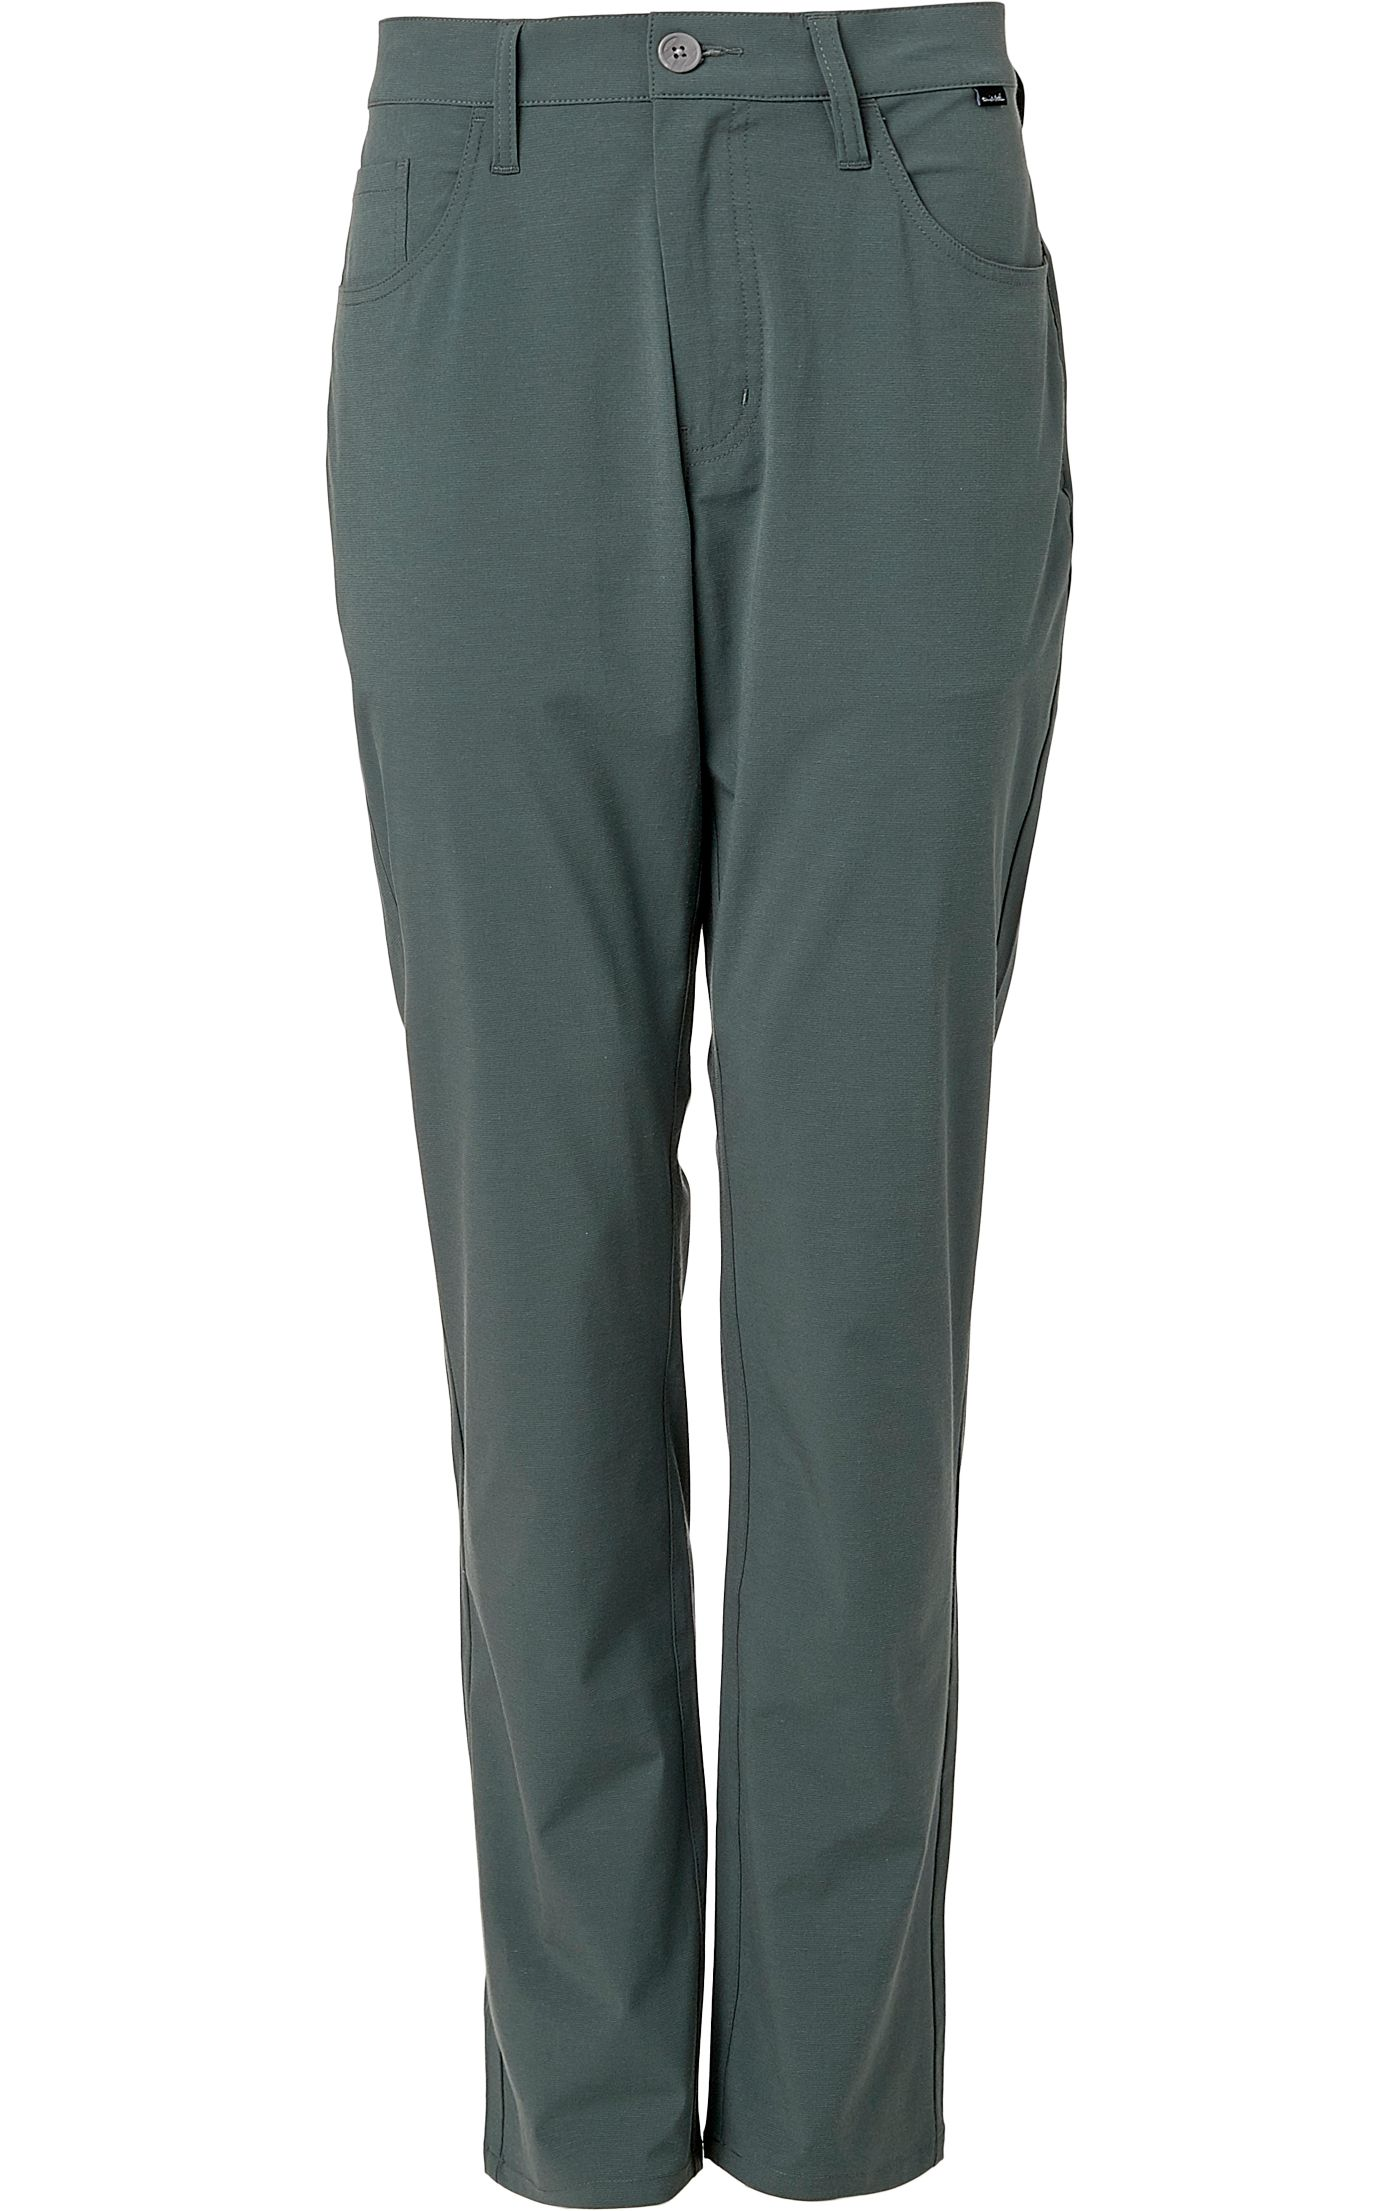 TravisMathew Men's Slack Golf Pants